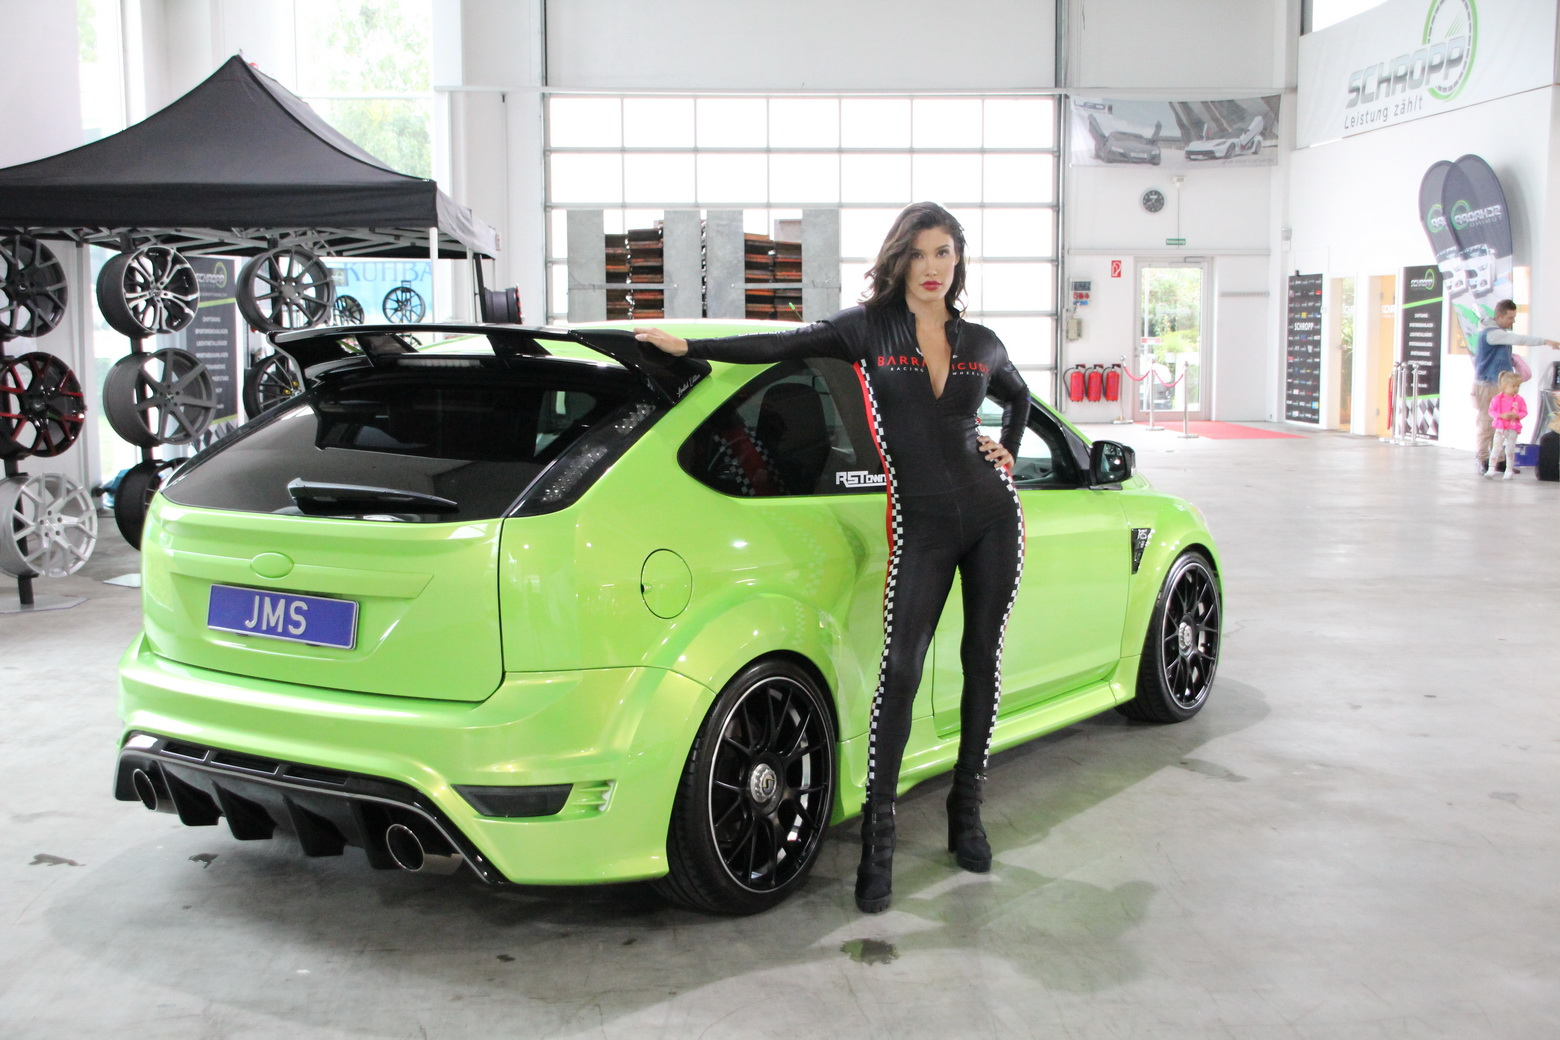 Ford_Focus_RS_JMS_0006